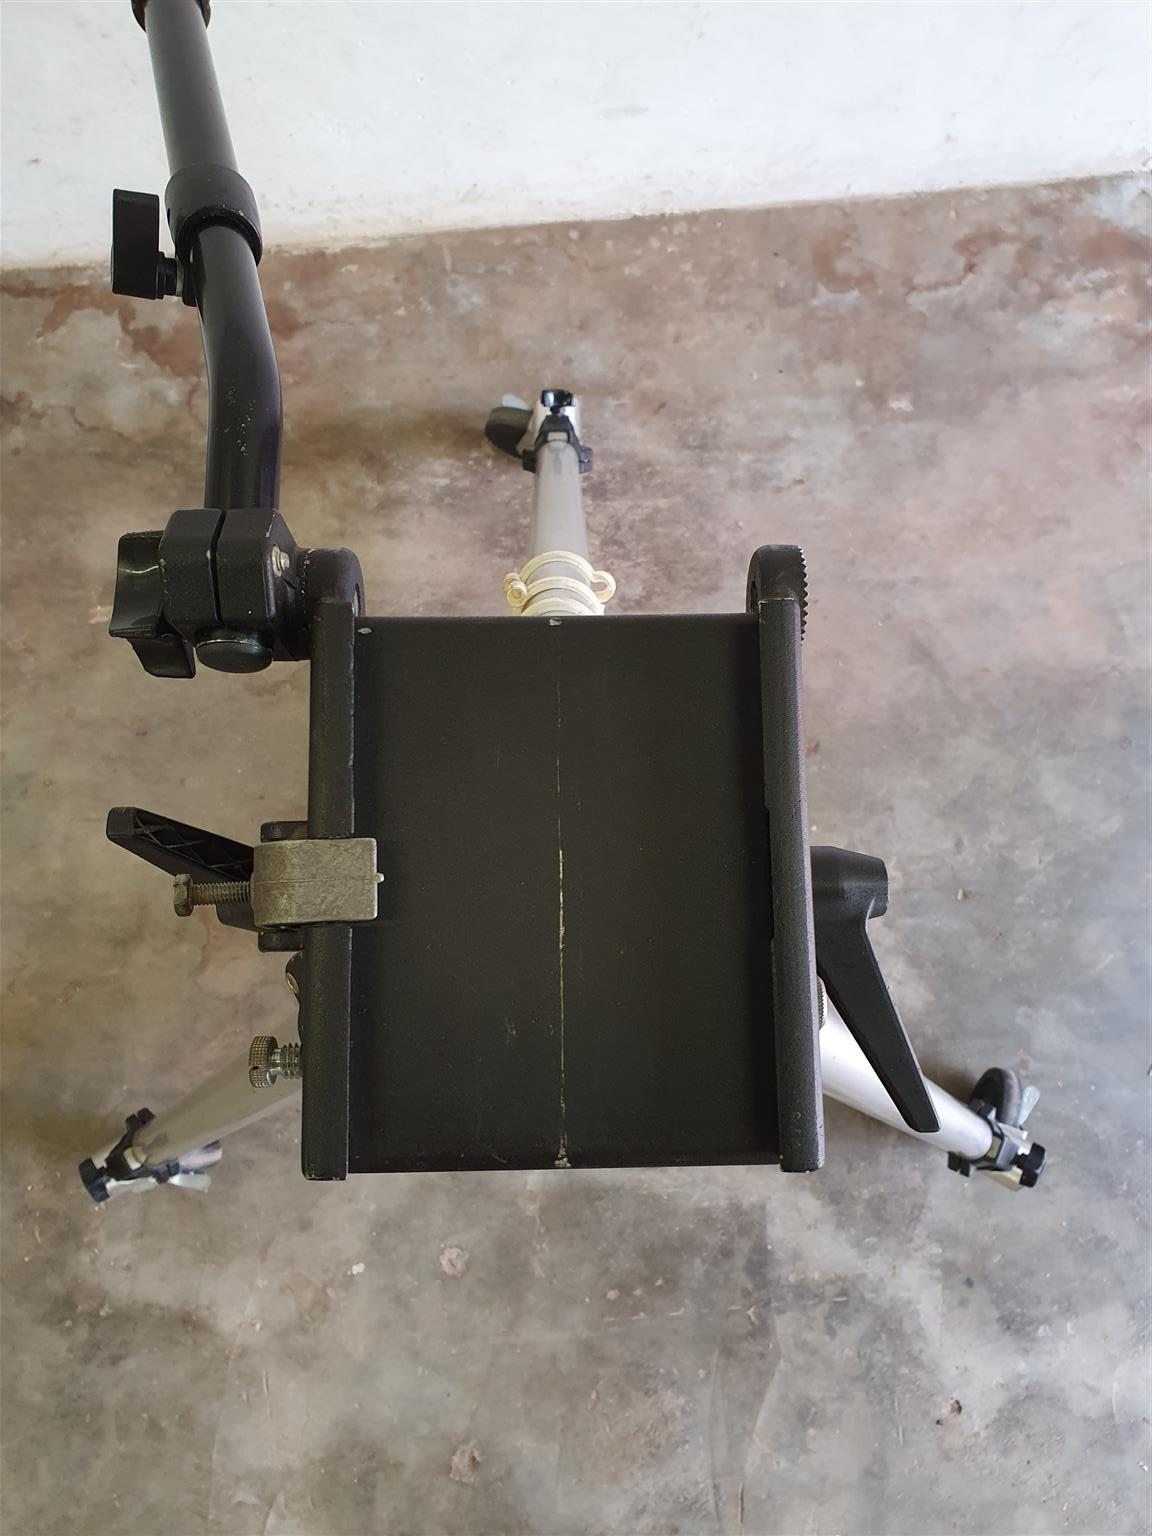 Manfrotto TV Camera Tripod with Manfrotto friction head and Dolly. Working condition.